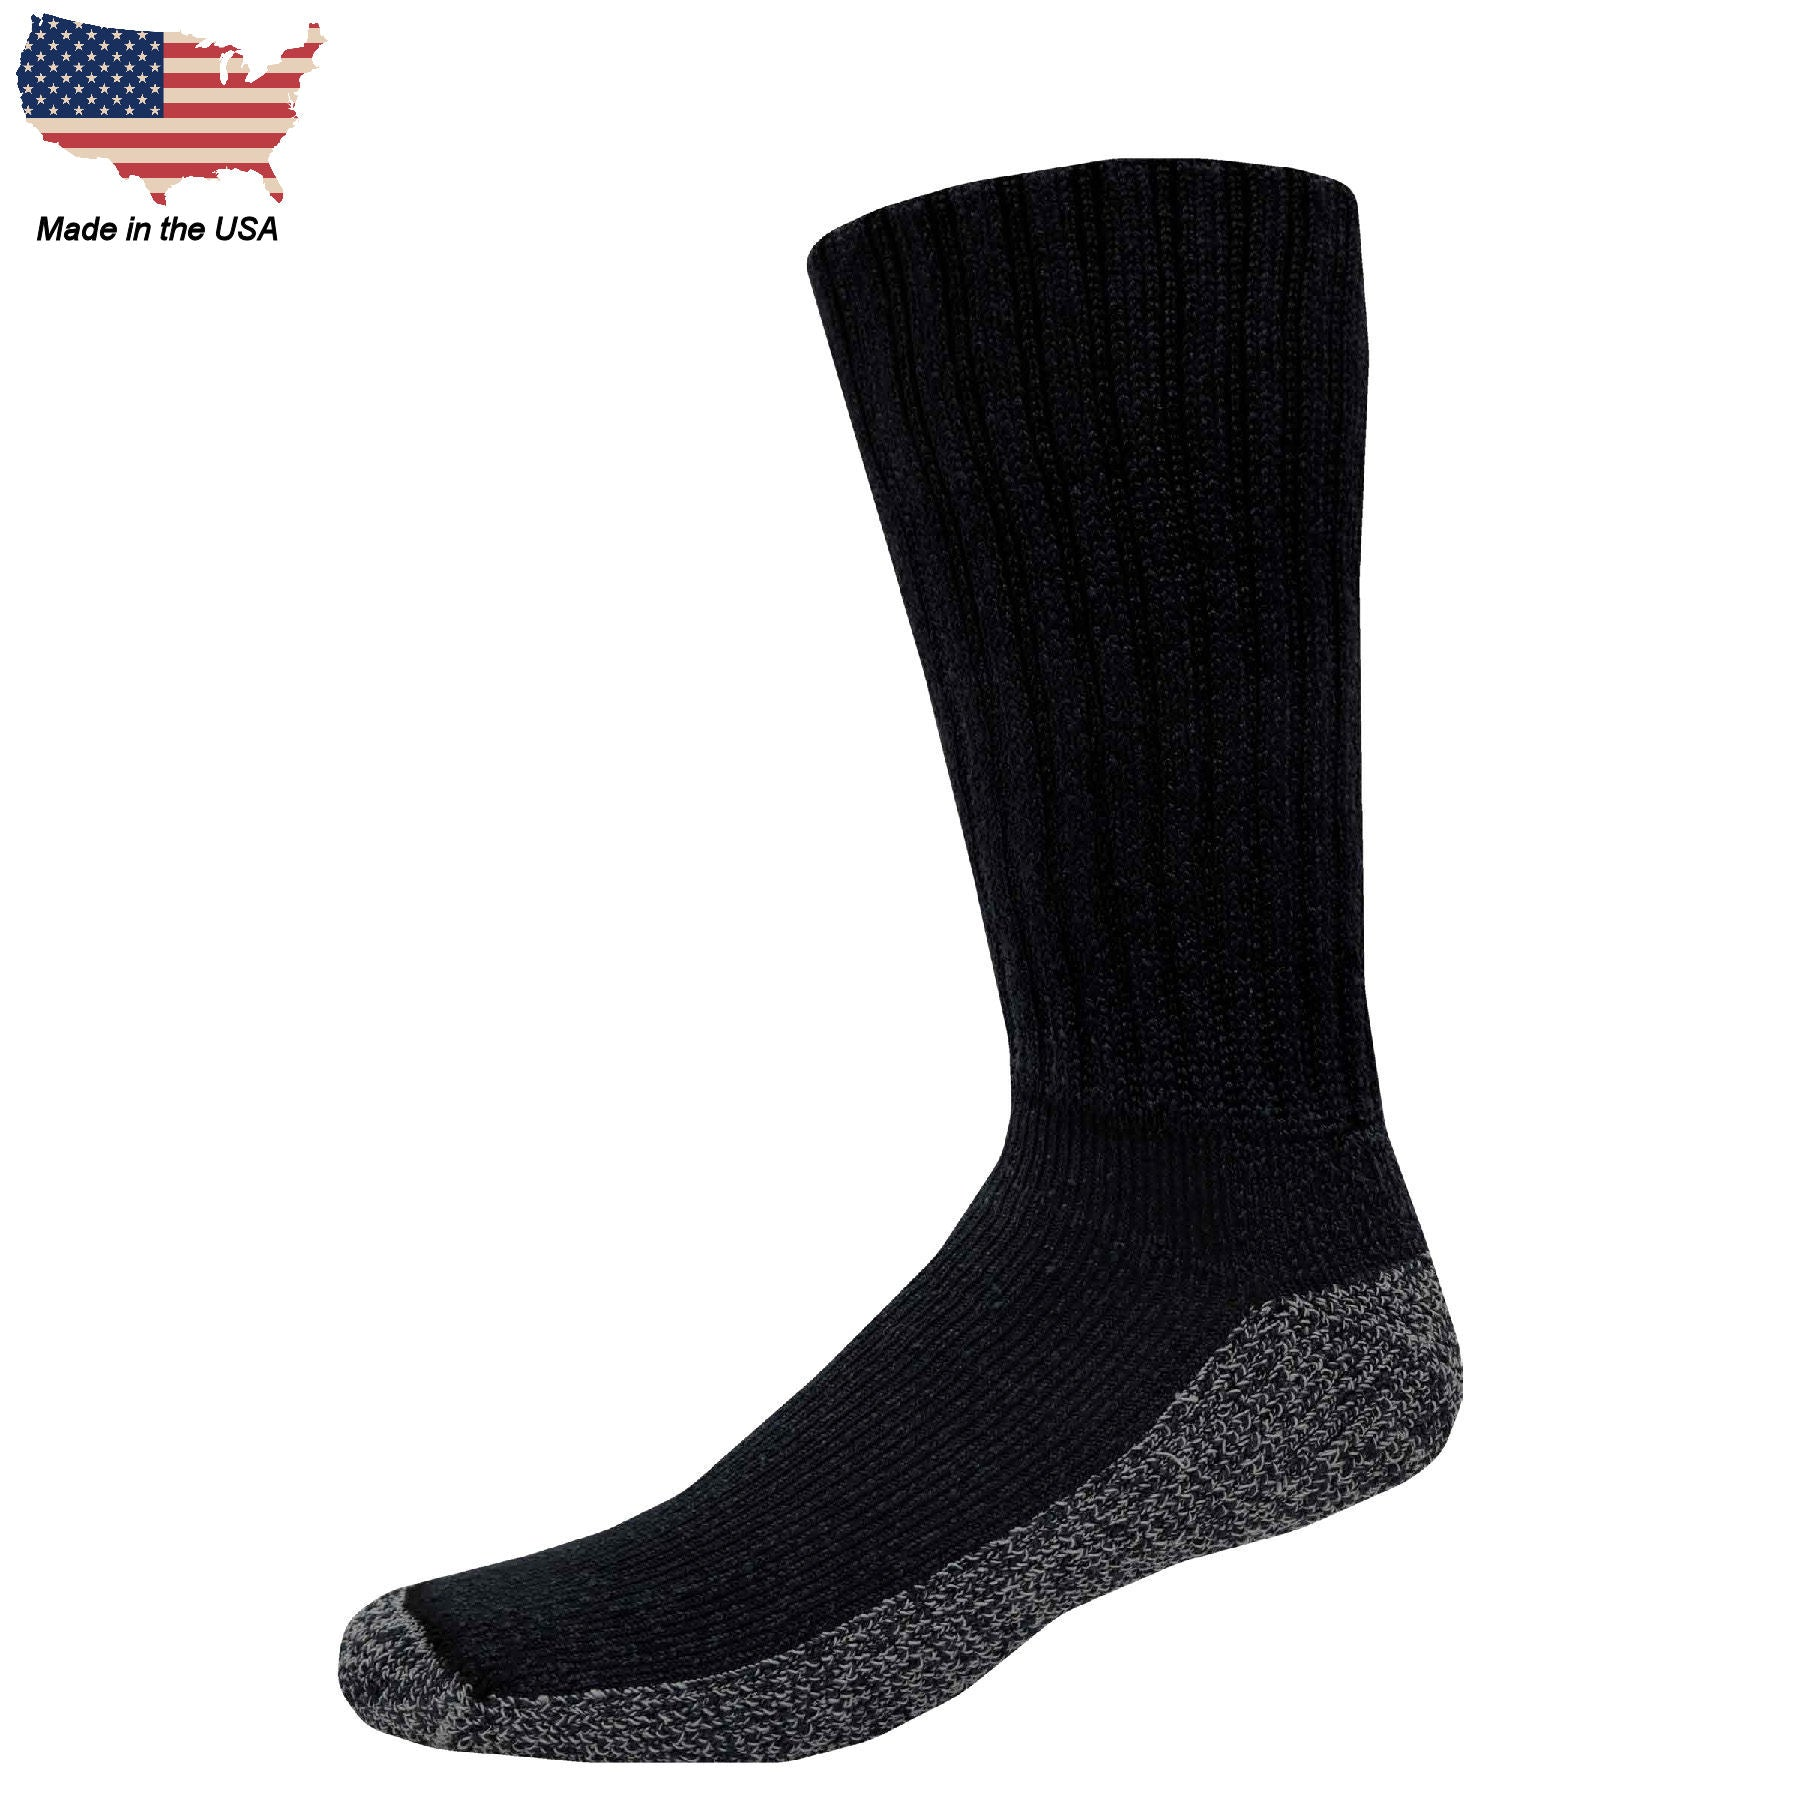 Foot Comfort Diabetic Care Black Crew Socks